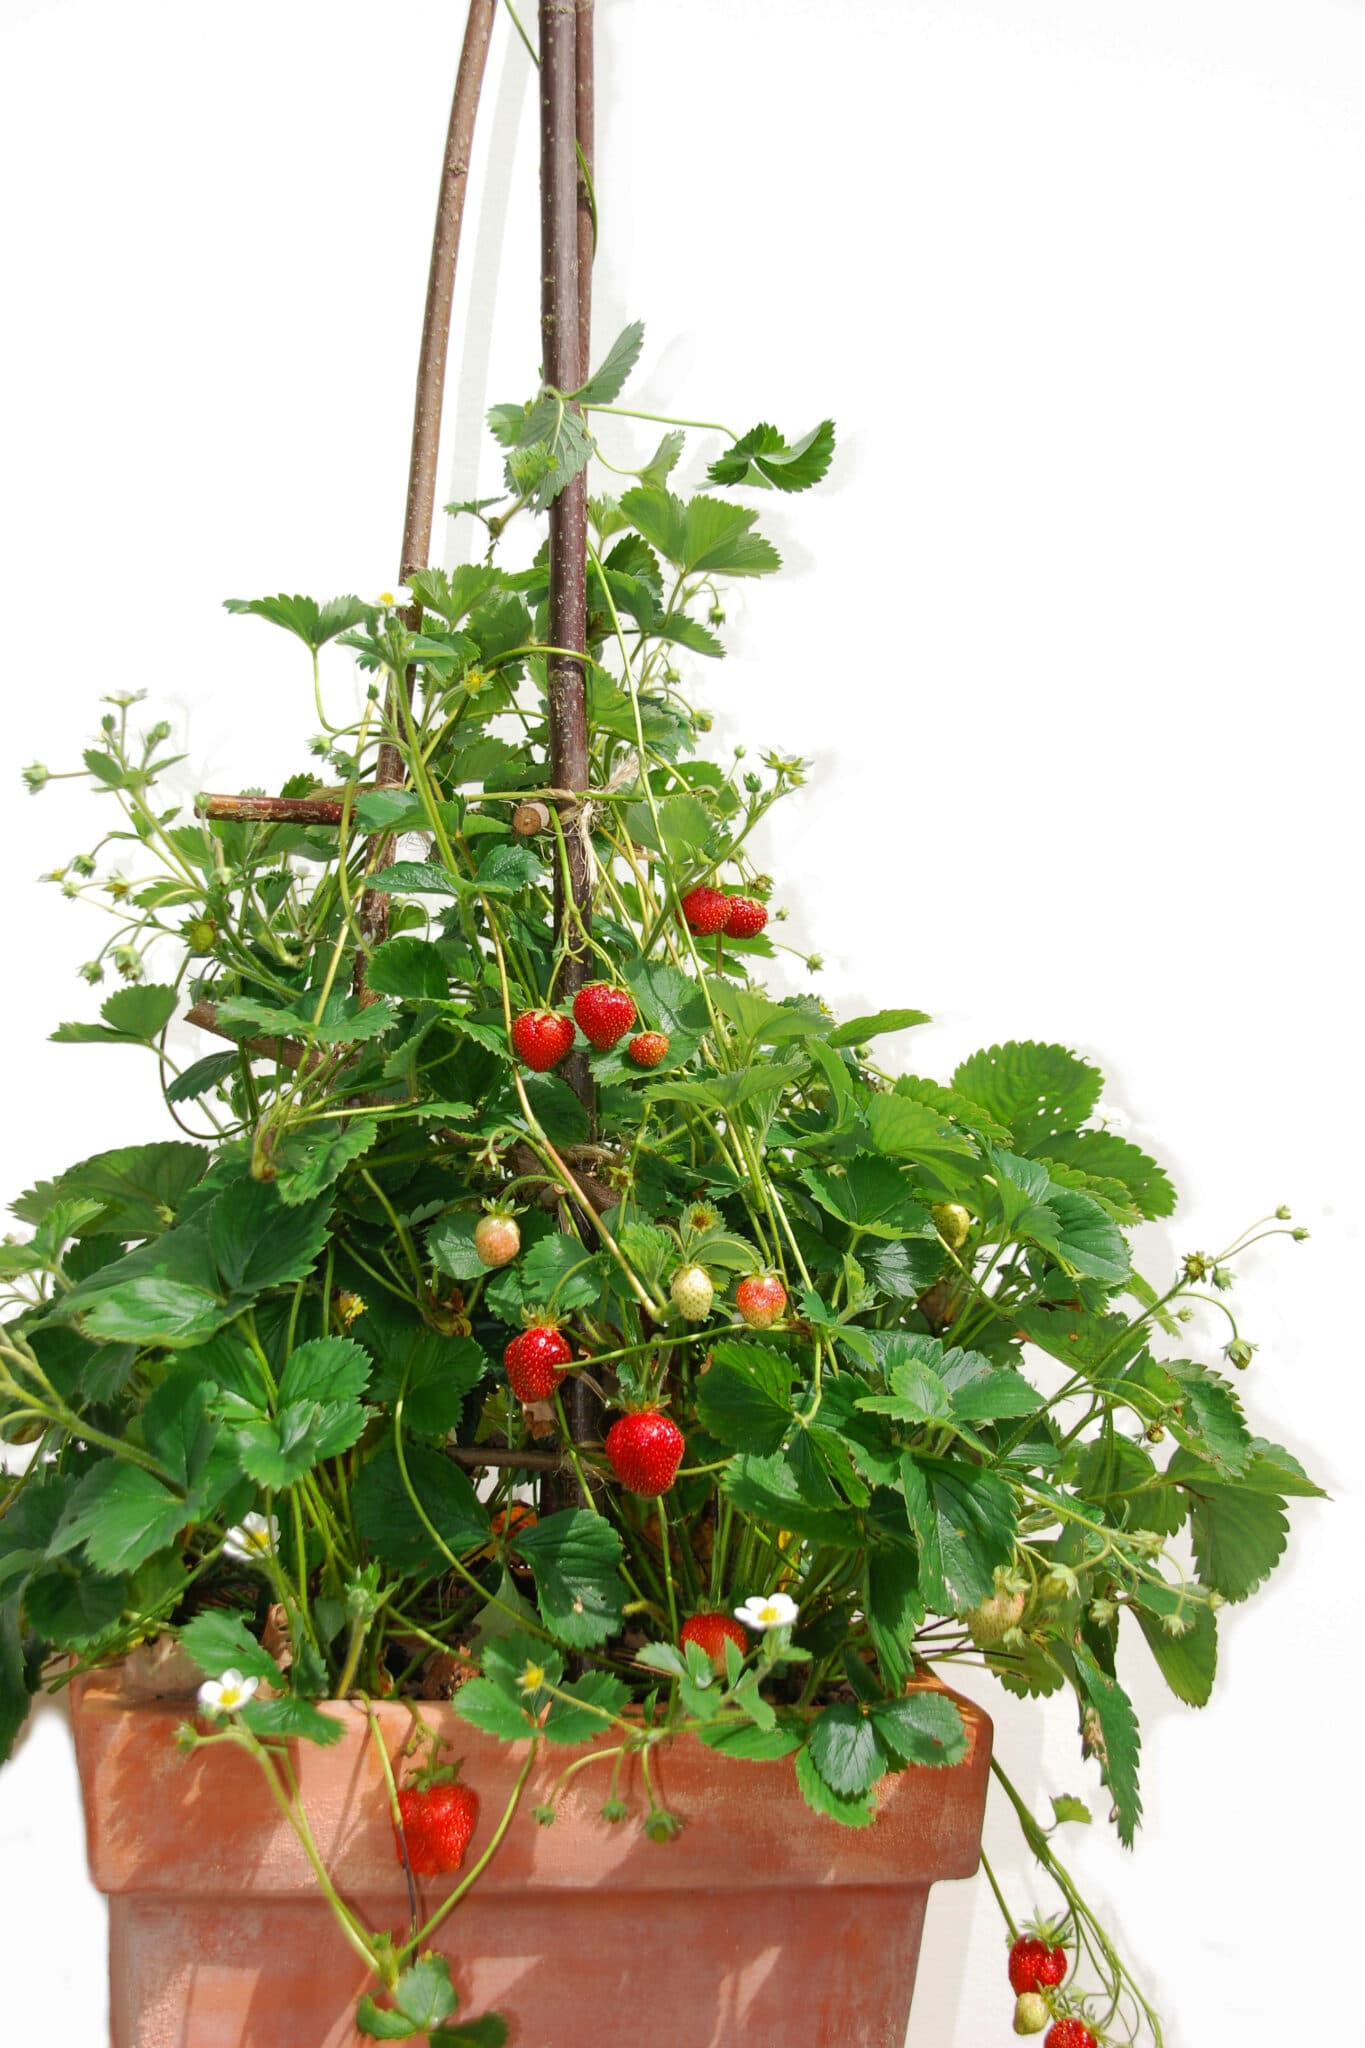 A large terracotta  planter with strawberry plants filled with ripe and unripe berries.